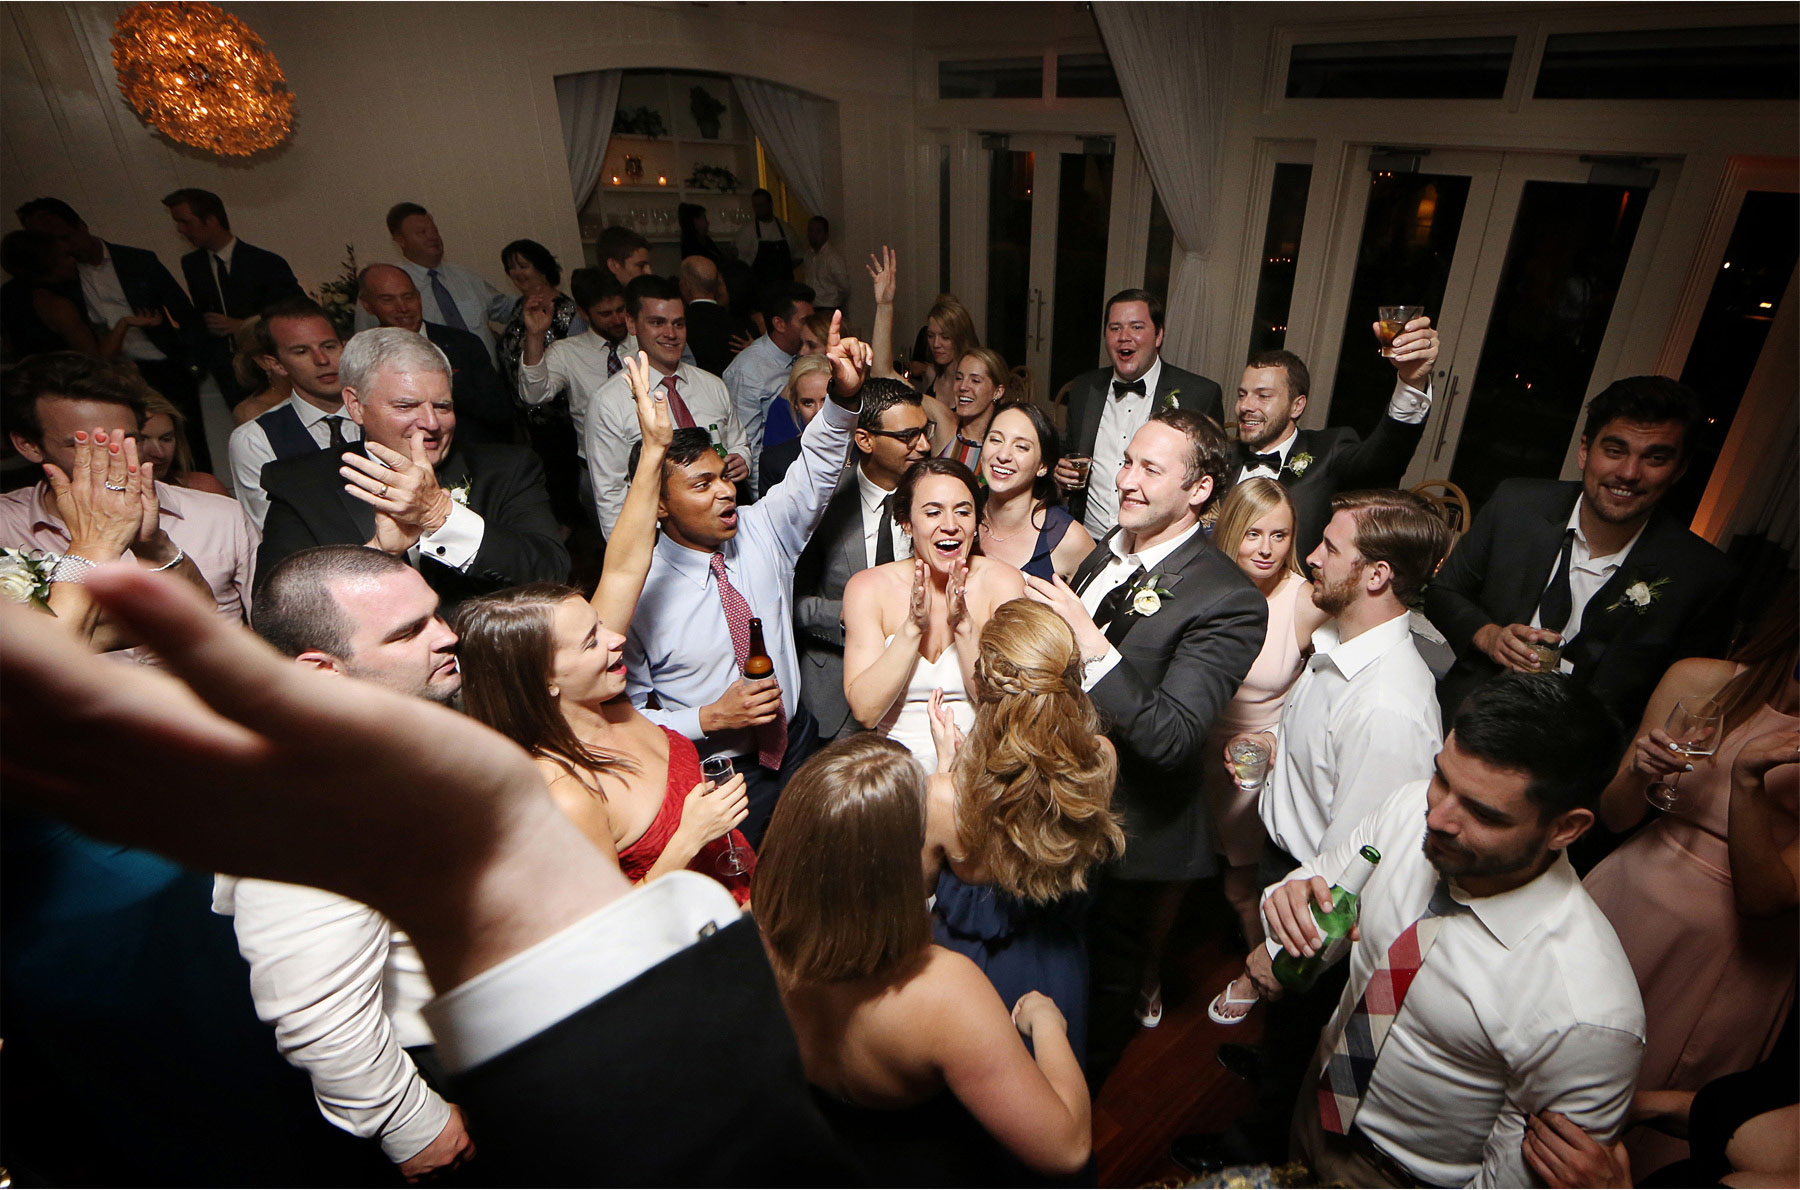 29-Napa-California-Wedding-Photographer-by-Andrew-Vick-Photography-Spring-Destination-Carneros-Resort-and-Spa-Reception-Bride-Groom-Guests-Dance-Alex-and-Roger.jpg